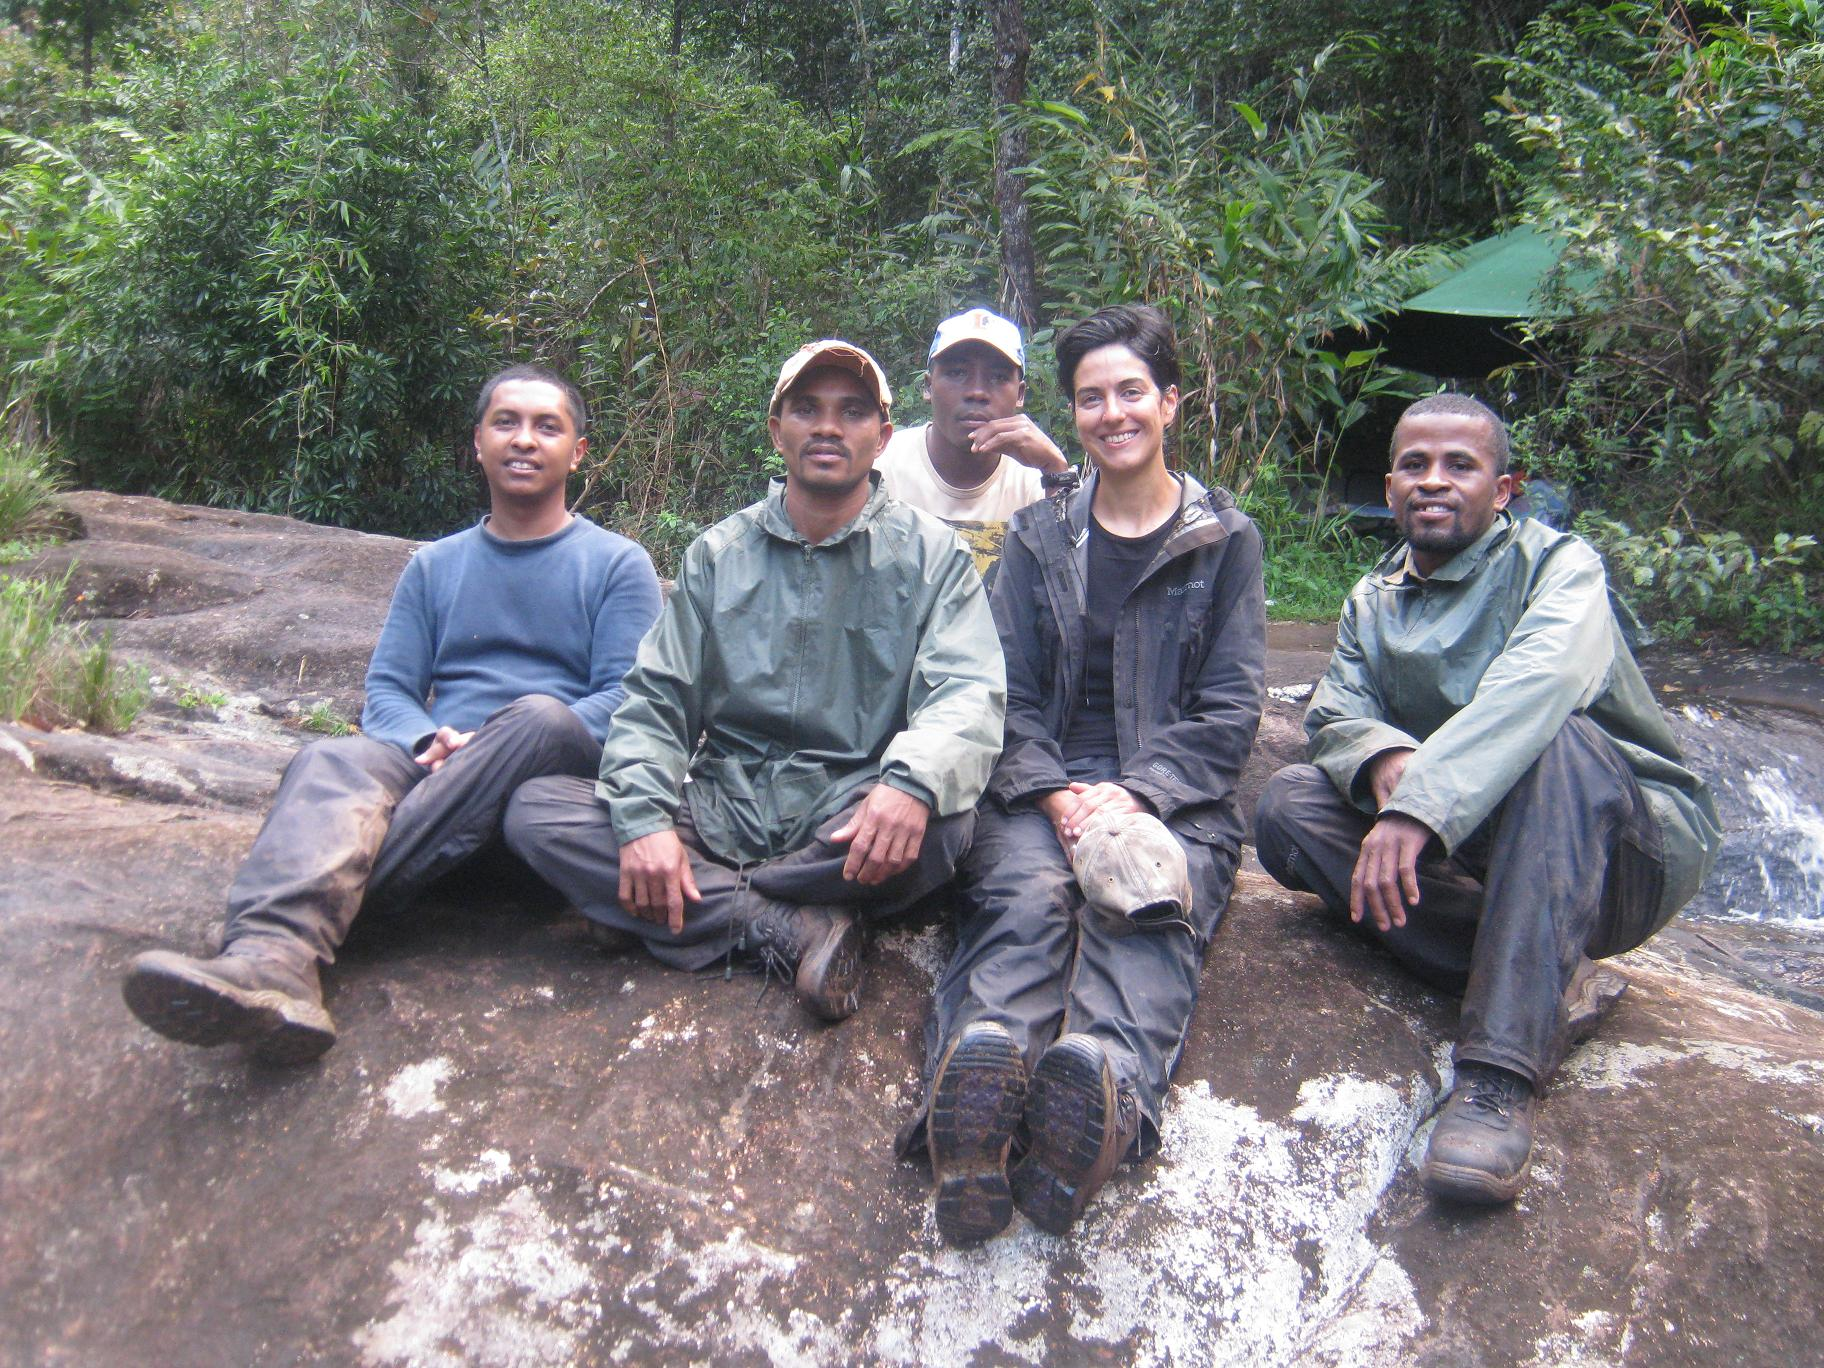 Cheirogaleus team at Marojejy